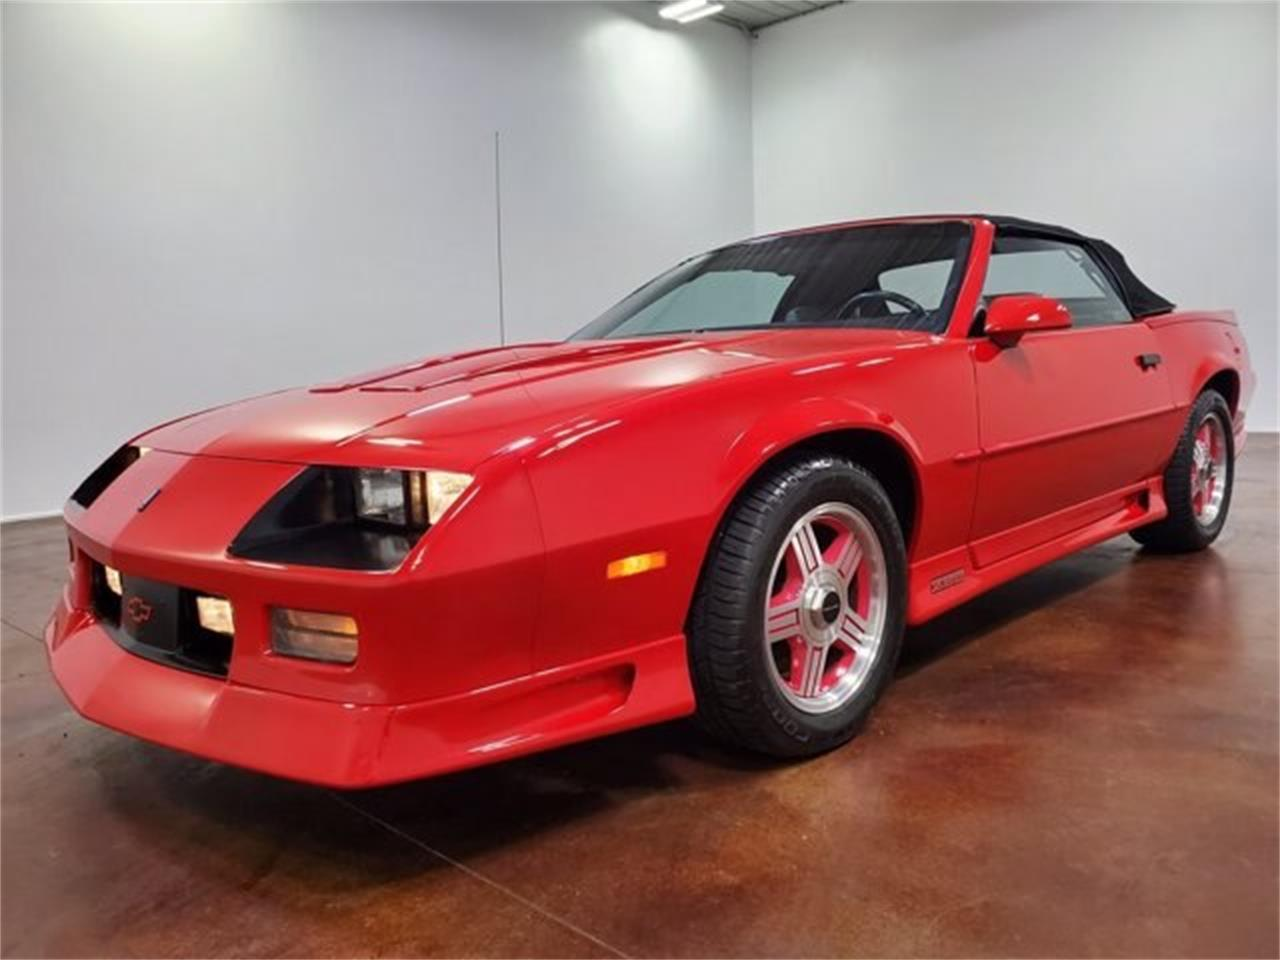 1991 Chevrolet Camaro (CC-1393321) for sale in Sioux Falls, South Dakota